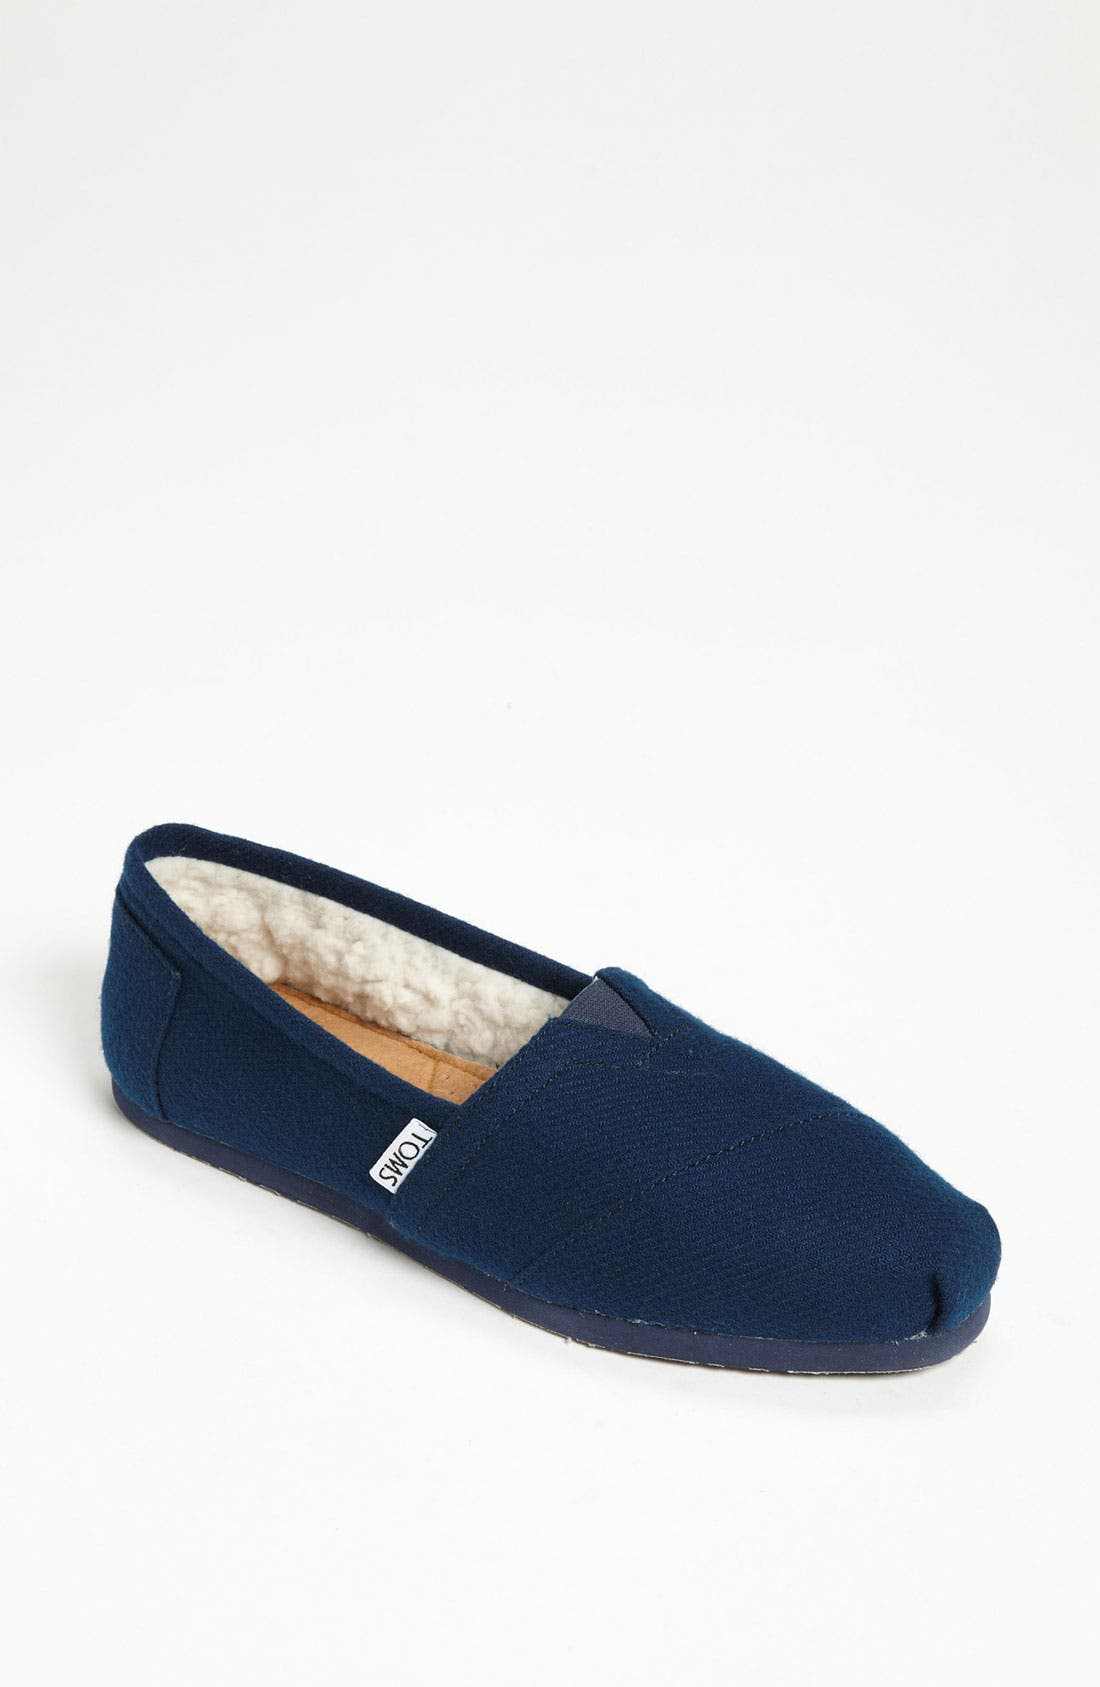 Alternate Image 1 Selected - TOMS 'Classic' Woolen Slip-On (Women) (Nordstrom Exclusive)